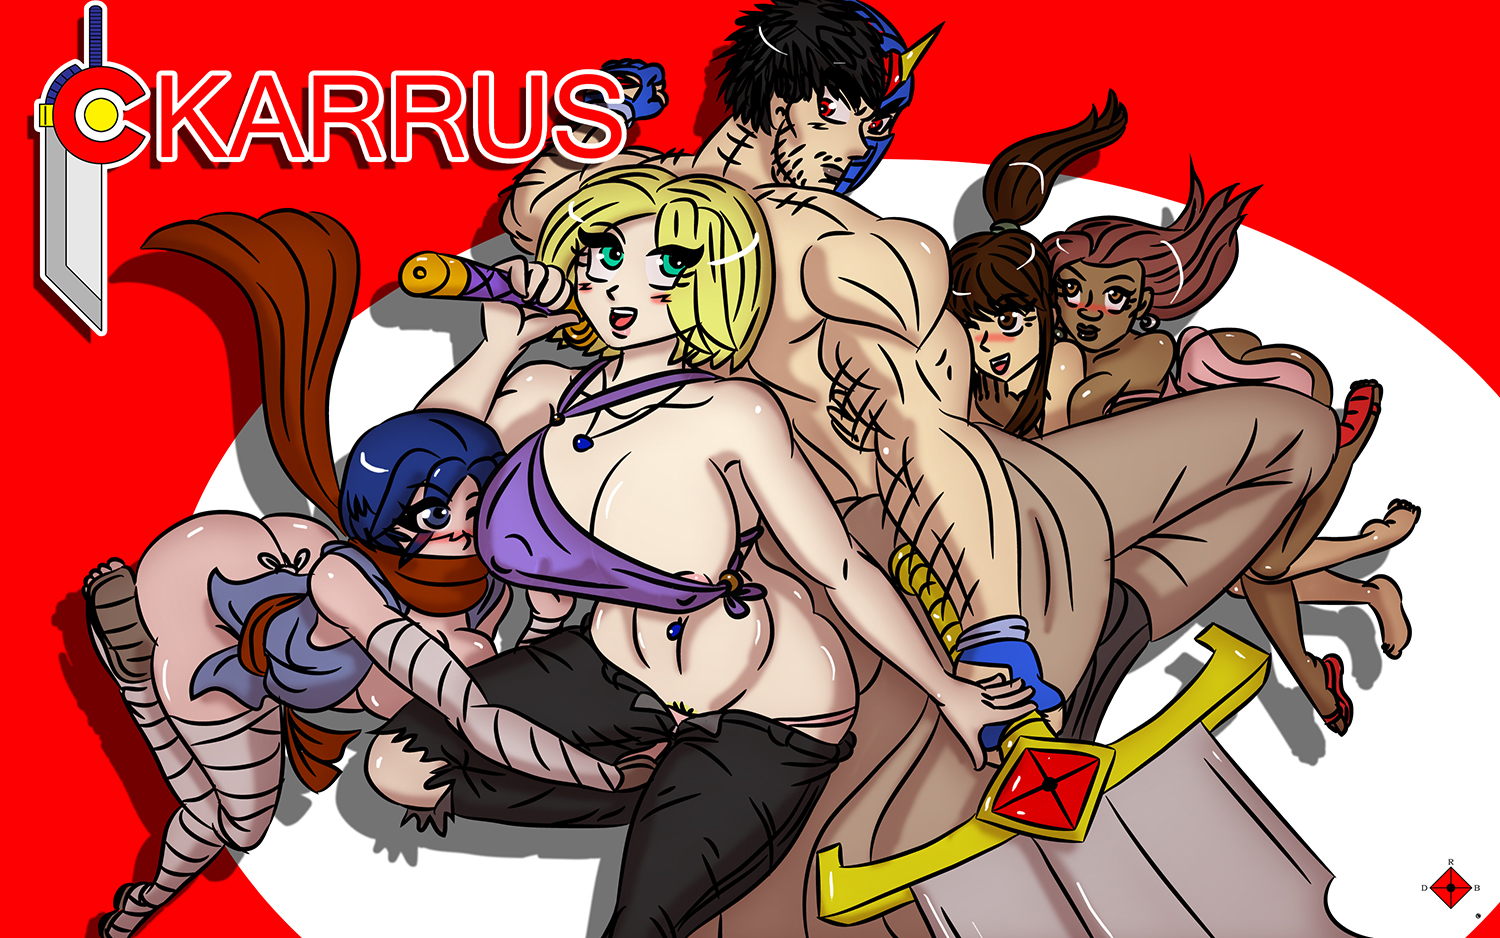 Series Cover 1 (Censored)